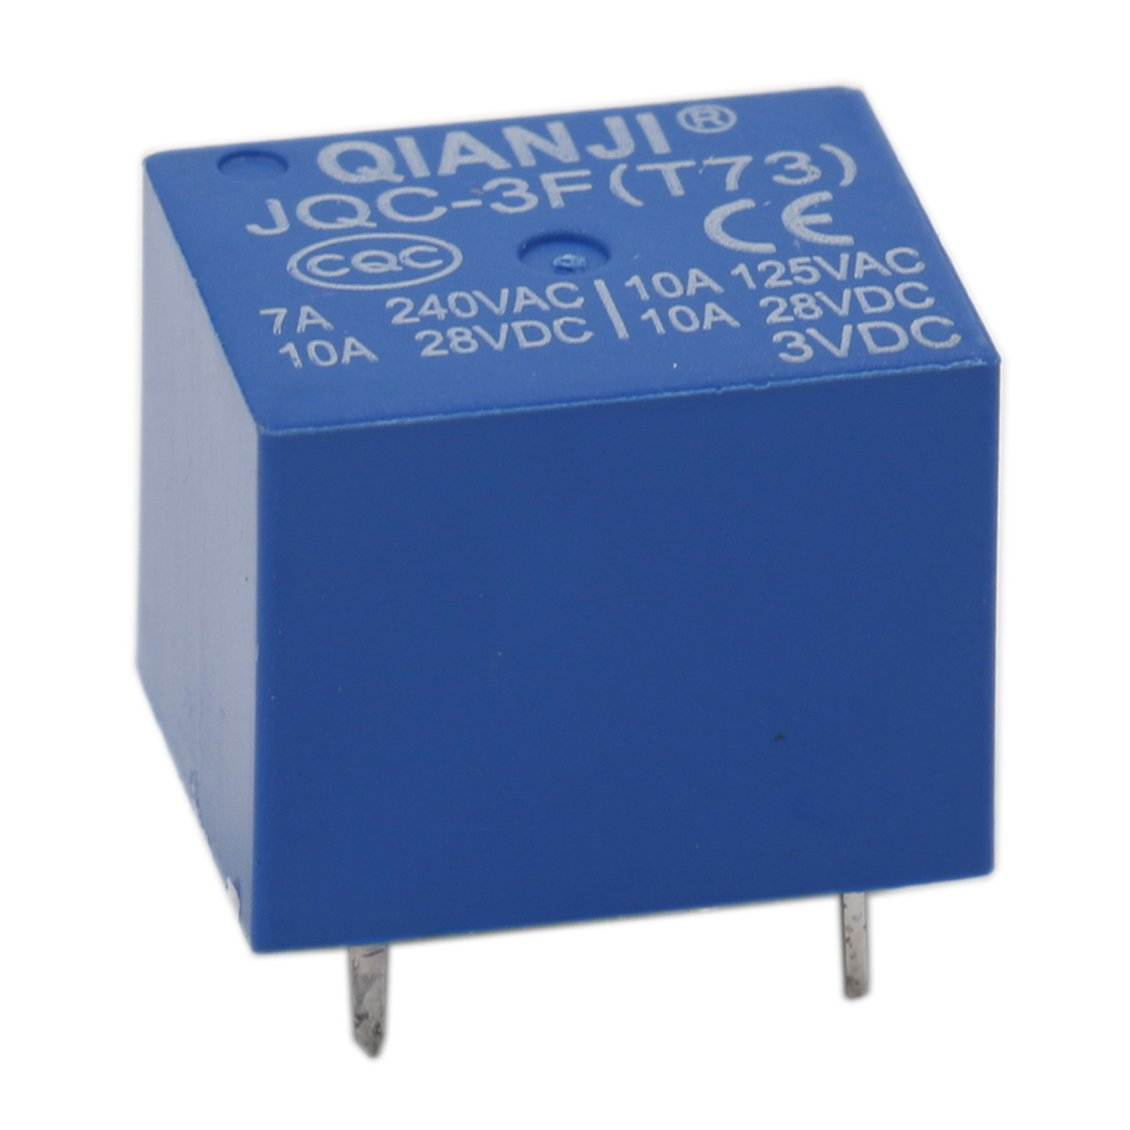 Heschen Pc Board Relay Jqc 3ft73 Dc 3v Coil Spst 7a 240vac 5 Pin Spdt Solid State 5v Terminals 5pack Business Industry Science